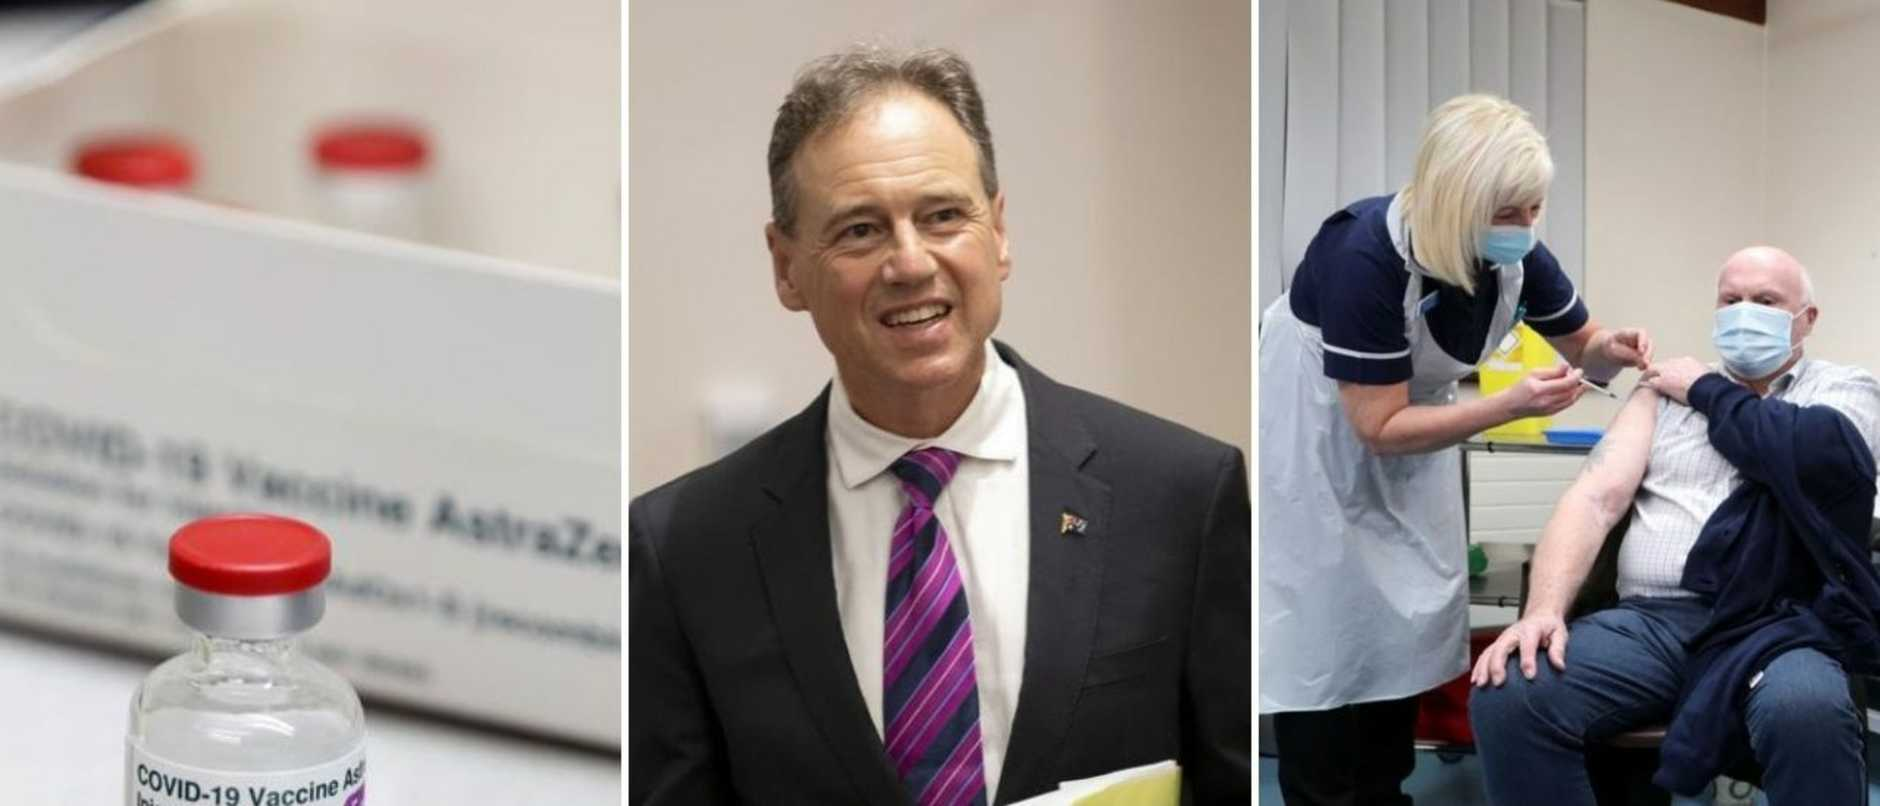 Health Minister Greg Hunt has revealed the government's ambitious schedule to roll out the coronavirus vaccine across Australia.